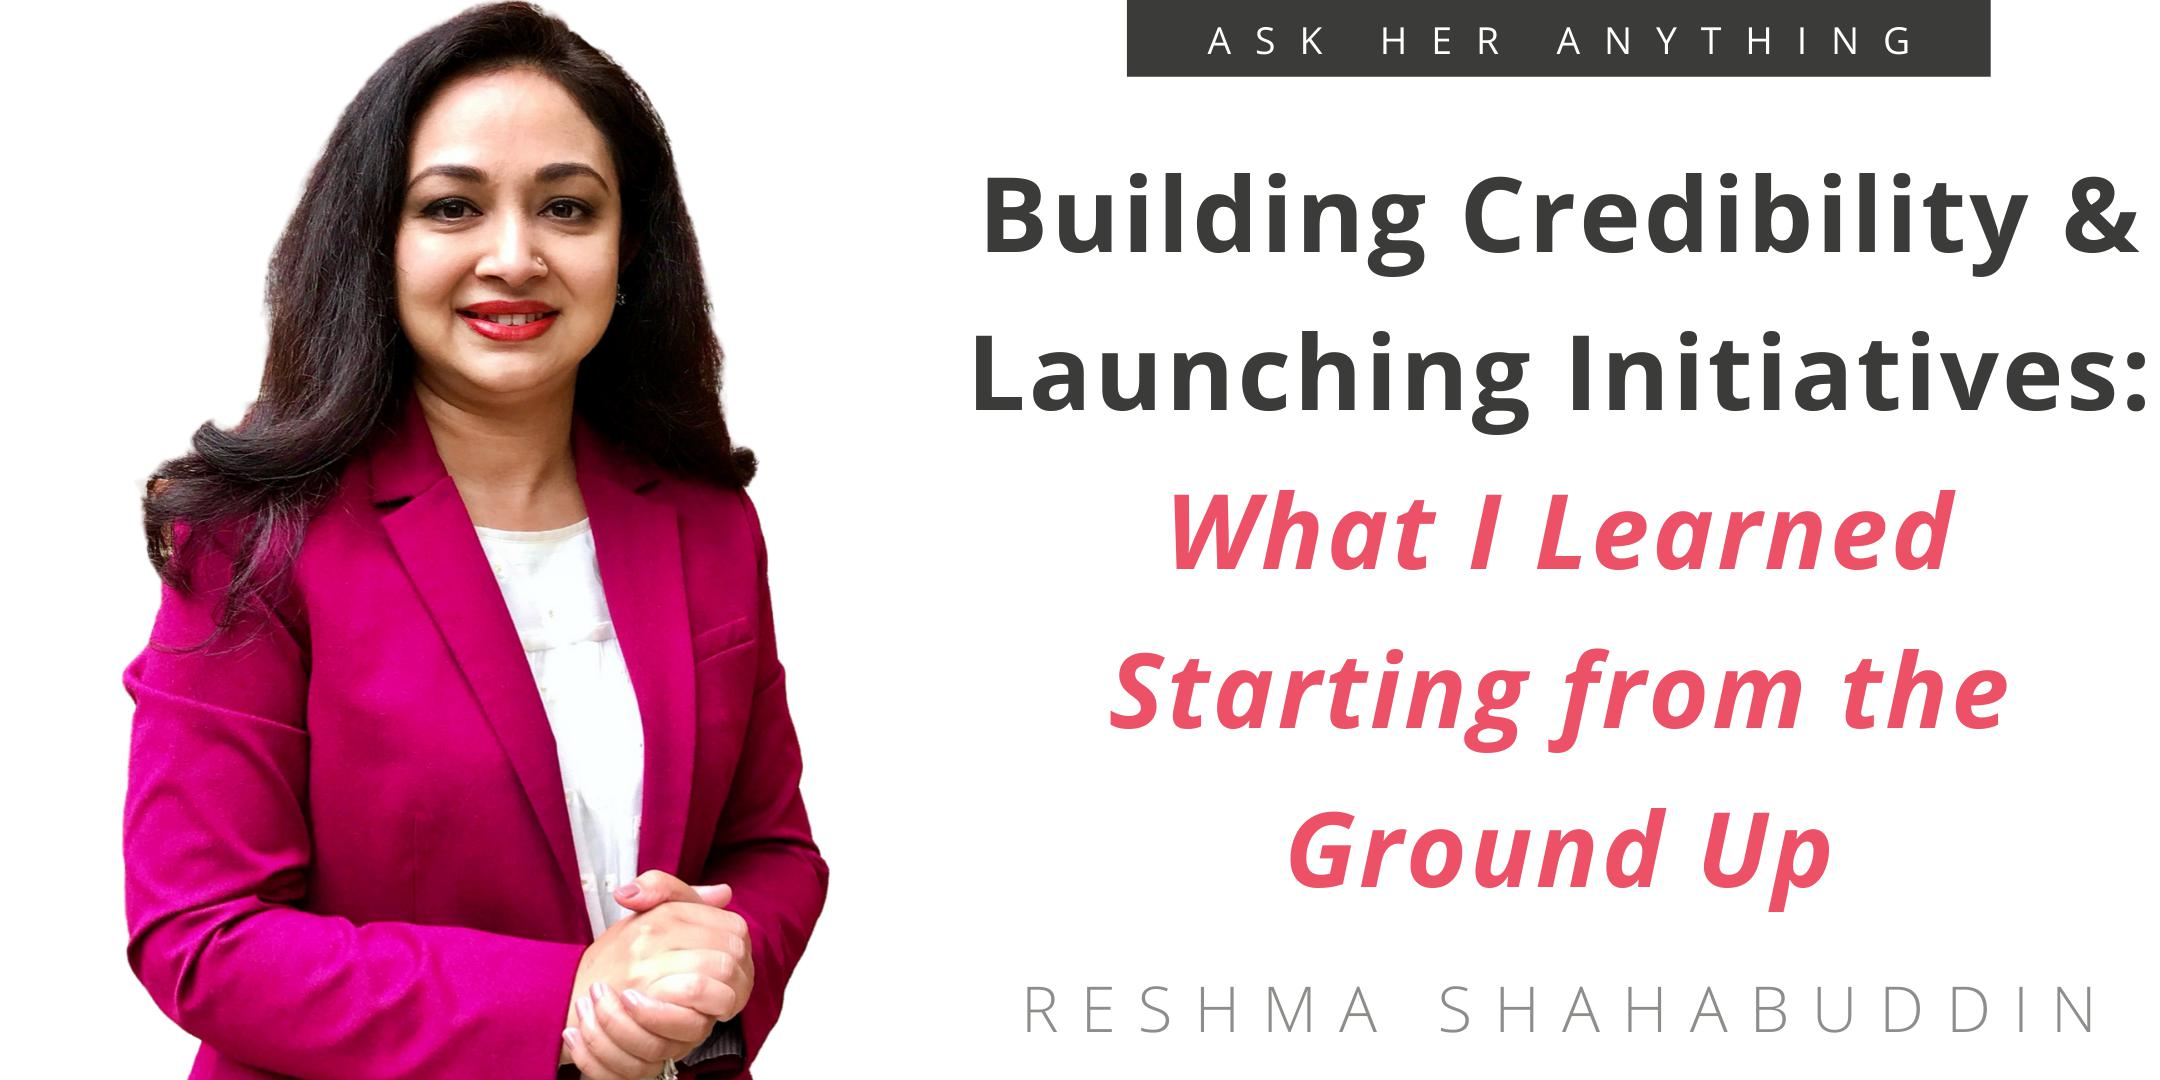 Building Credibility & Launching Initiatives: What I Learned Starting from the Ground Up